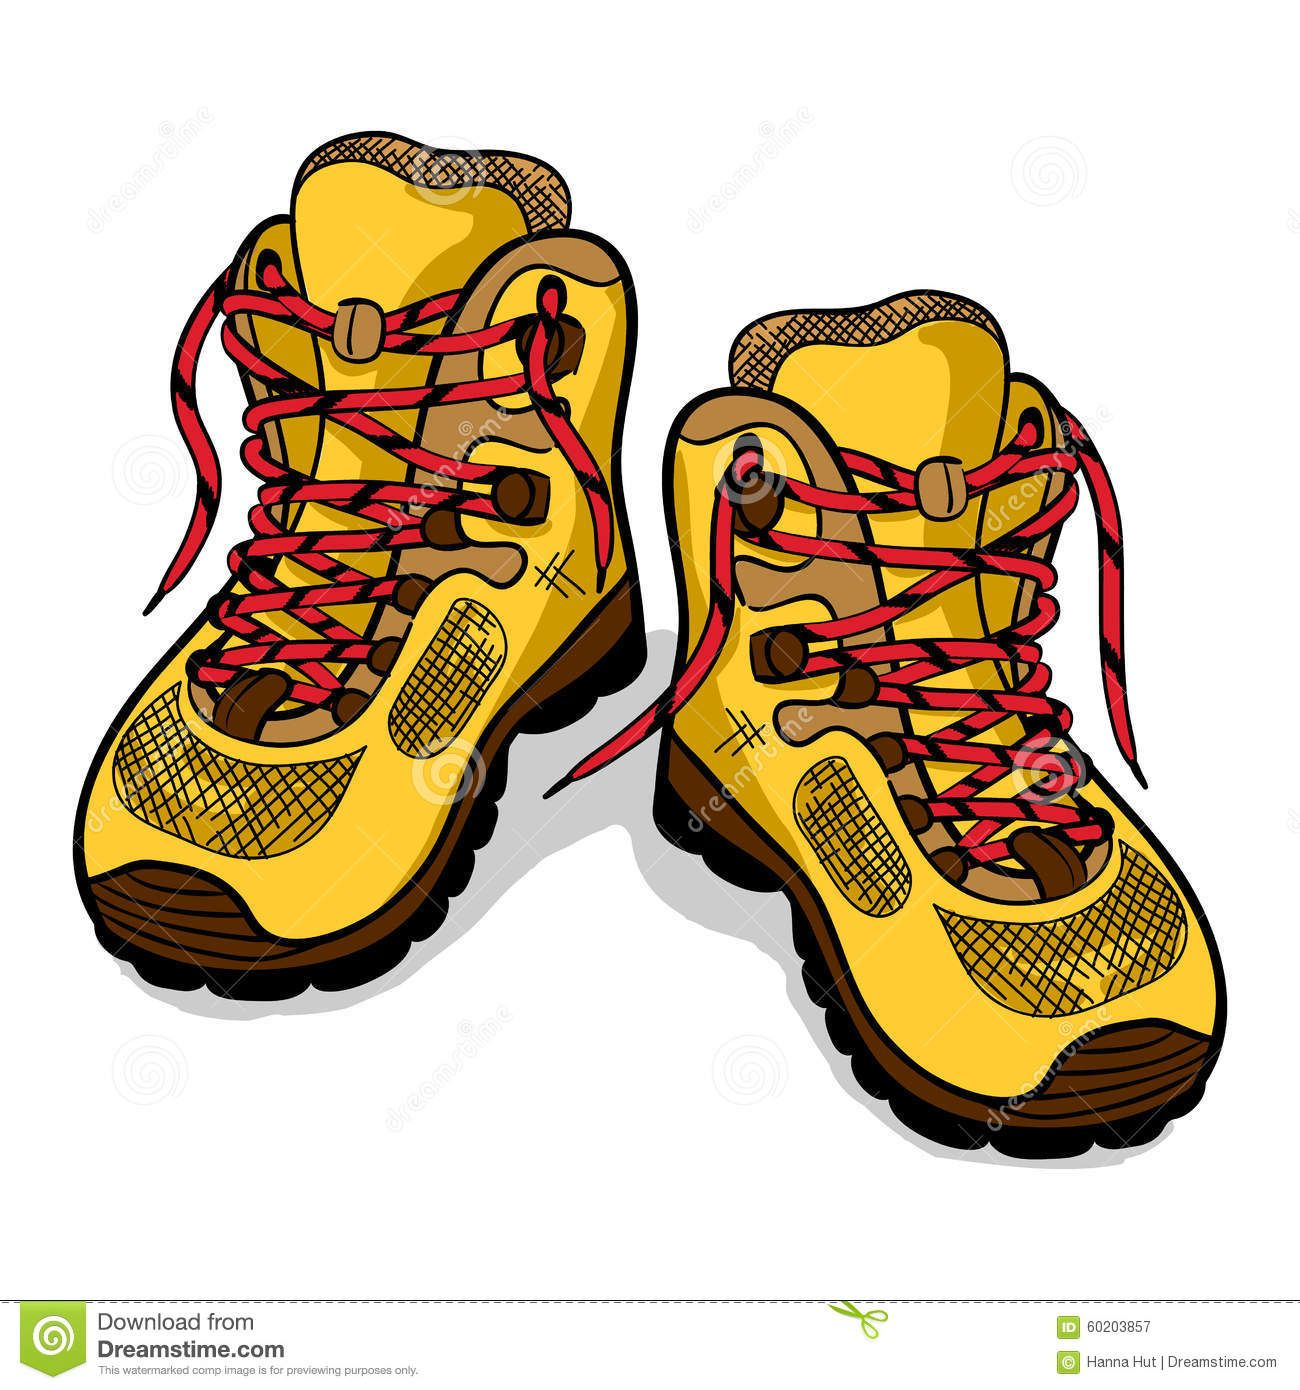 Hike clipart boot, Hike boot Transparent FREE for download.